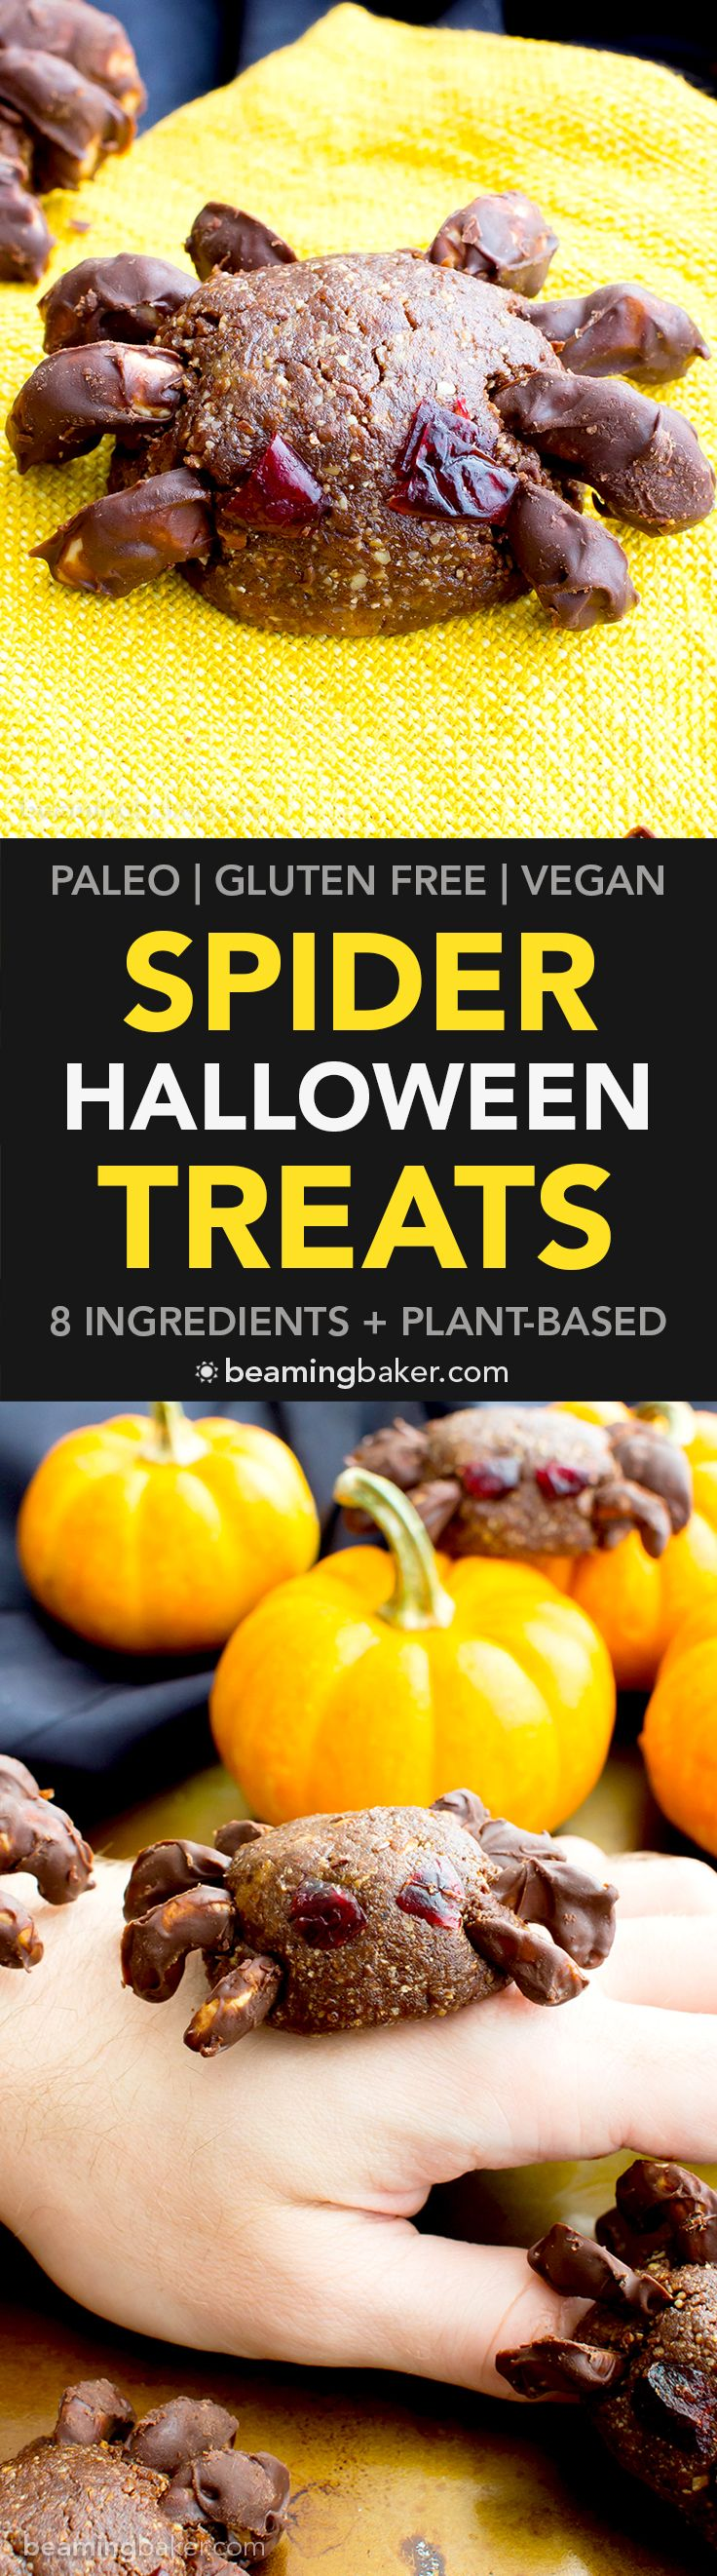 2589 best halloween desserts images on Pinterest